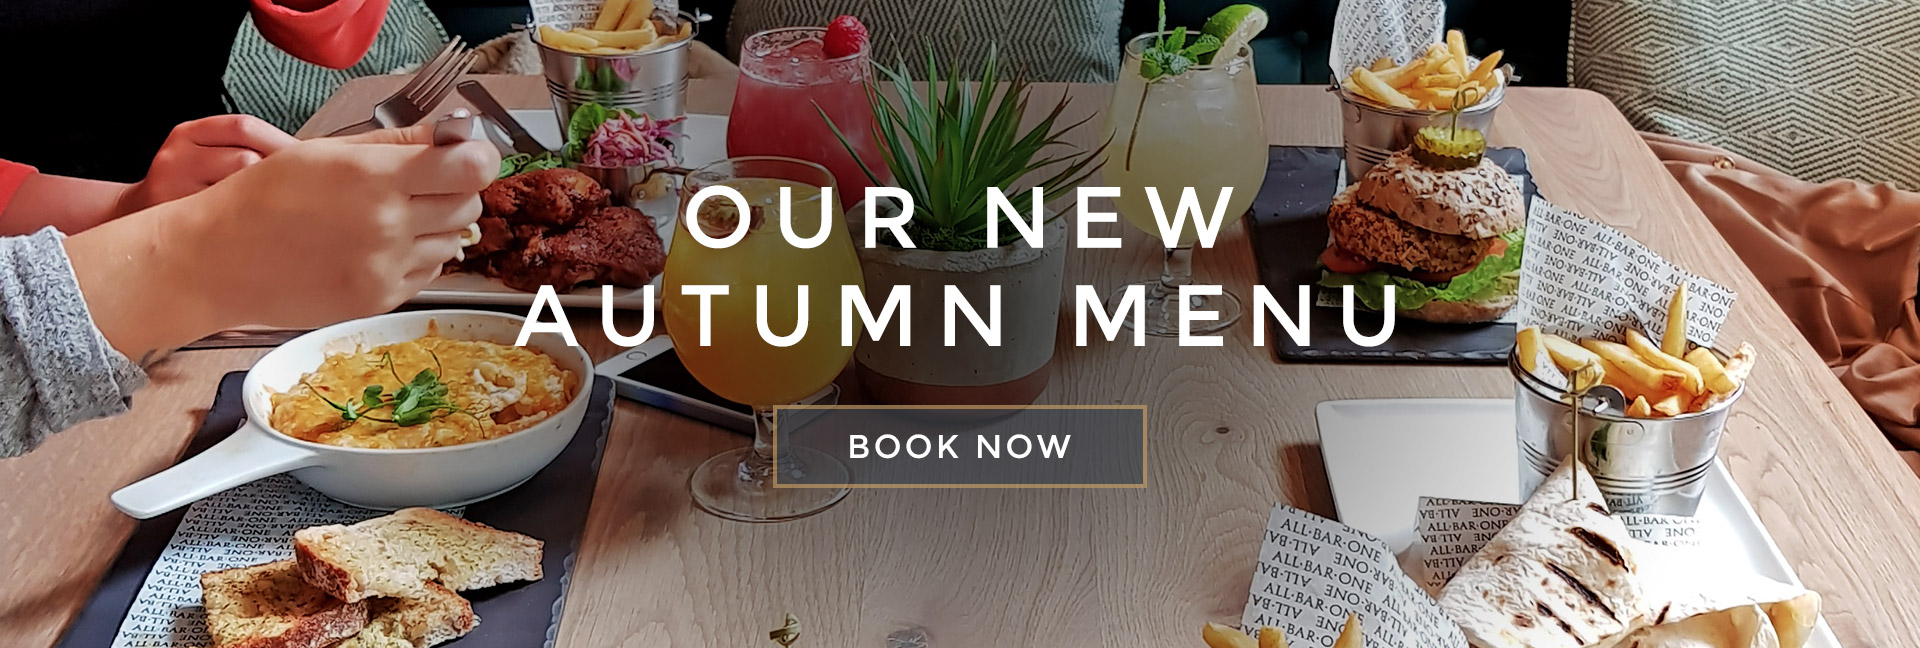 Our new Autumn menu at All Bar One Euston Square - Book now